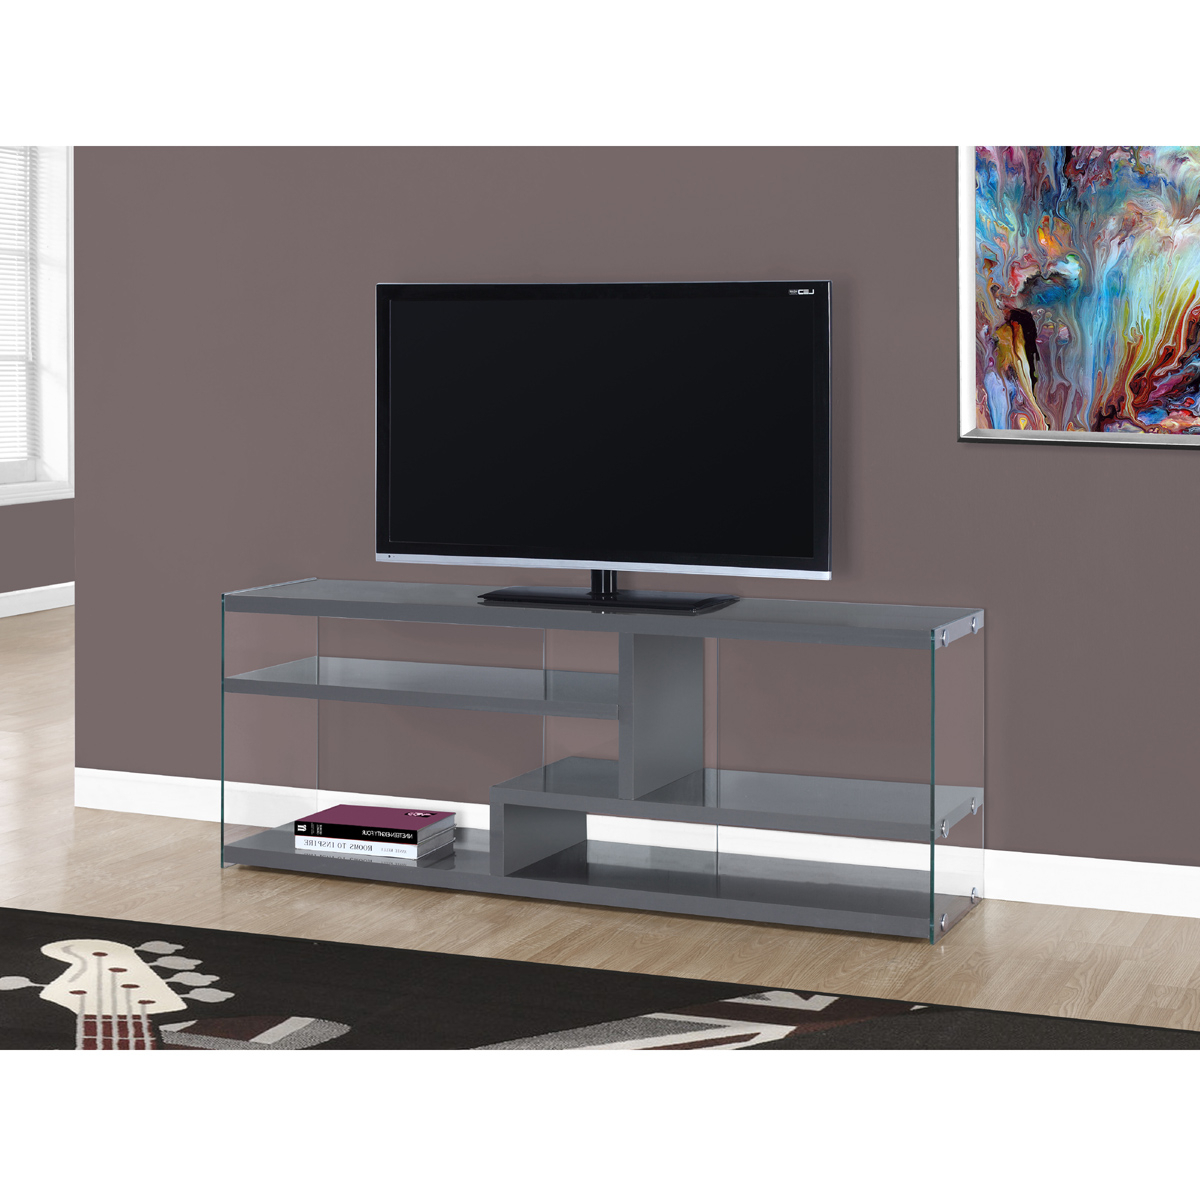 Well Liked Contemporary Tv Stands For Flat Screens With Regard To Vegas Tv Stand In Grey (View 18 of 20)